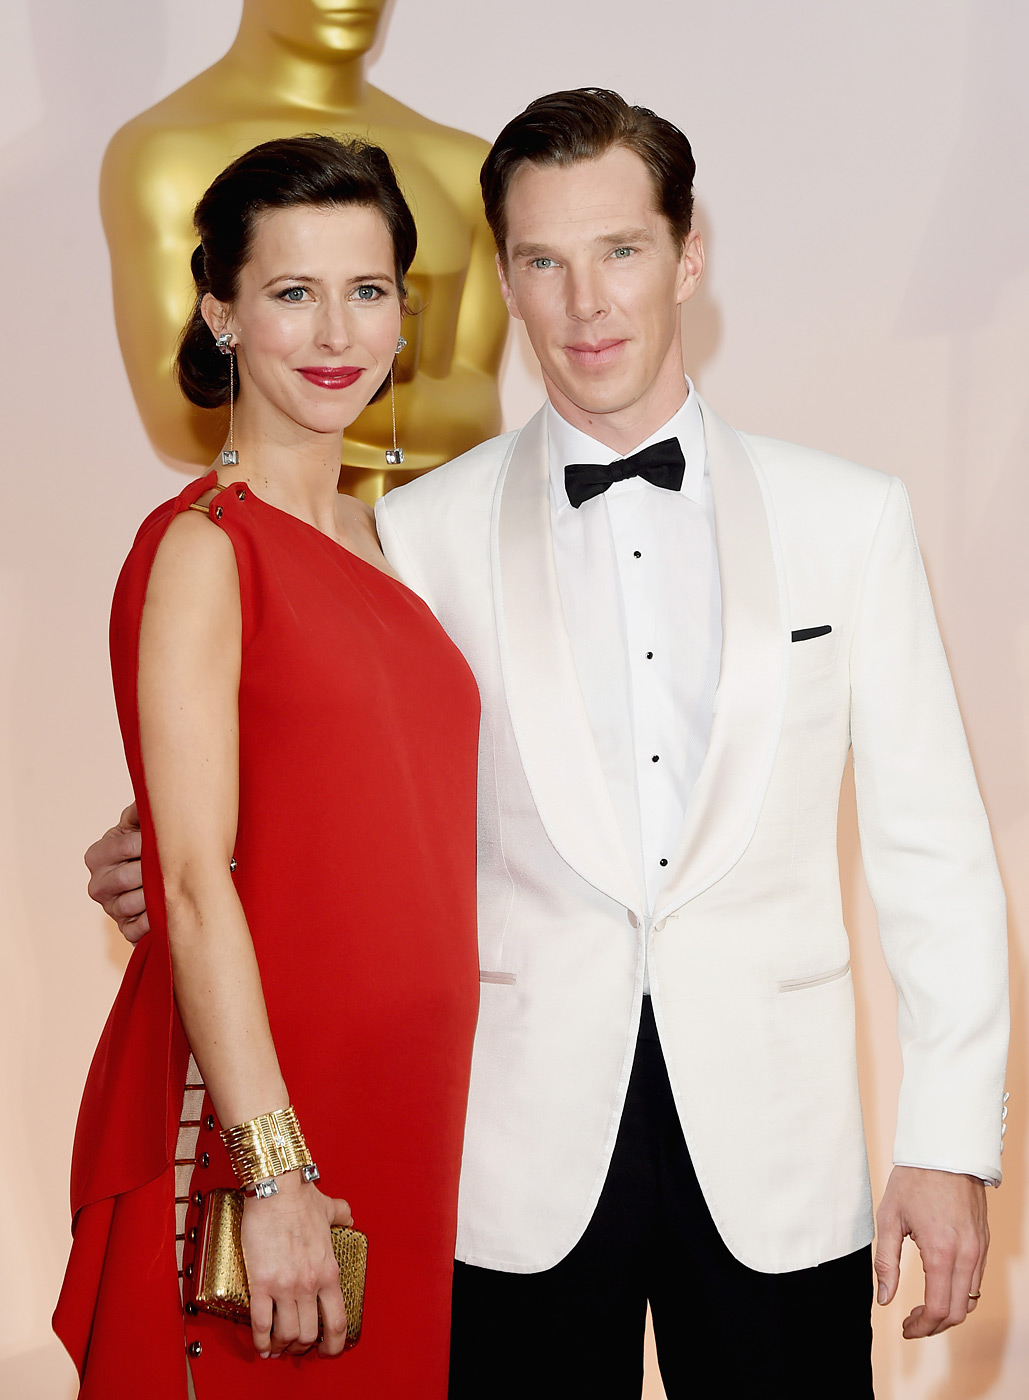 Benedict Cumberbatch, right, and Sophie Hunter  attend the 87th Annual Academy Awards on Feb. 22, 2015 in Hollywood, Calif.